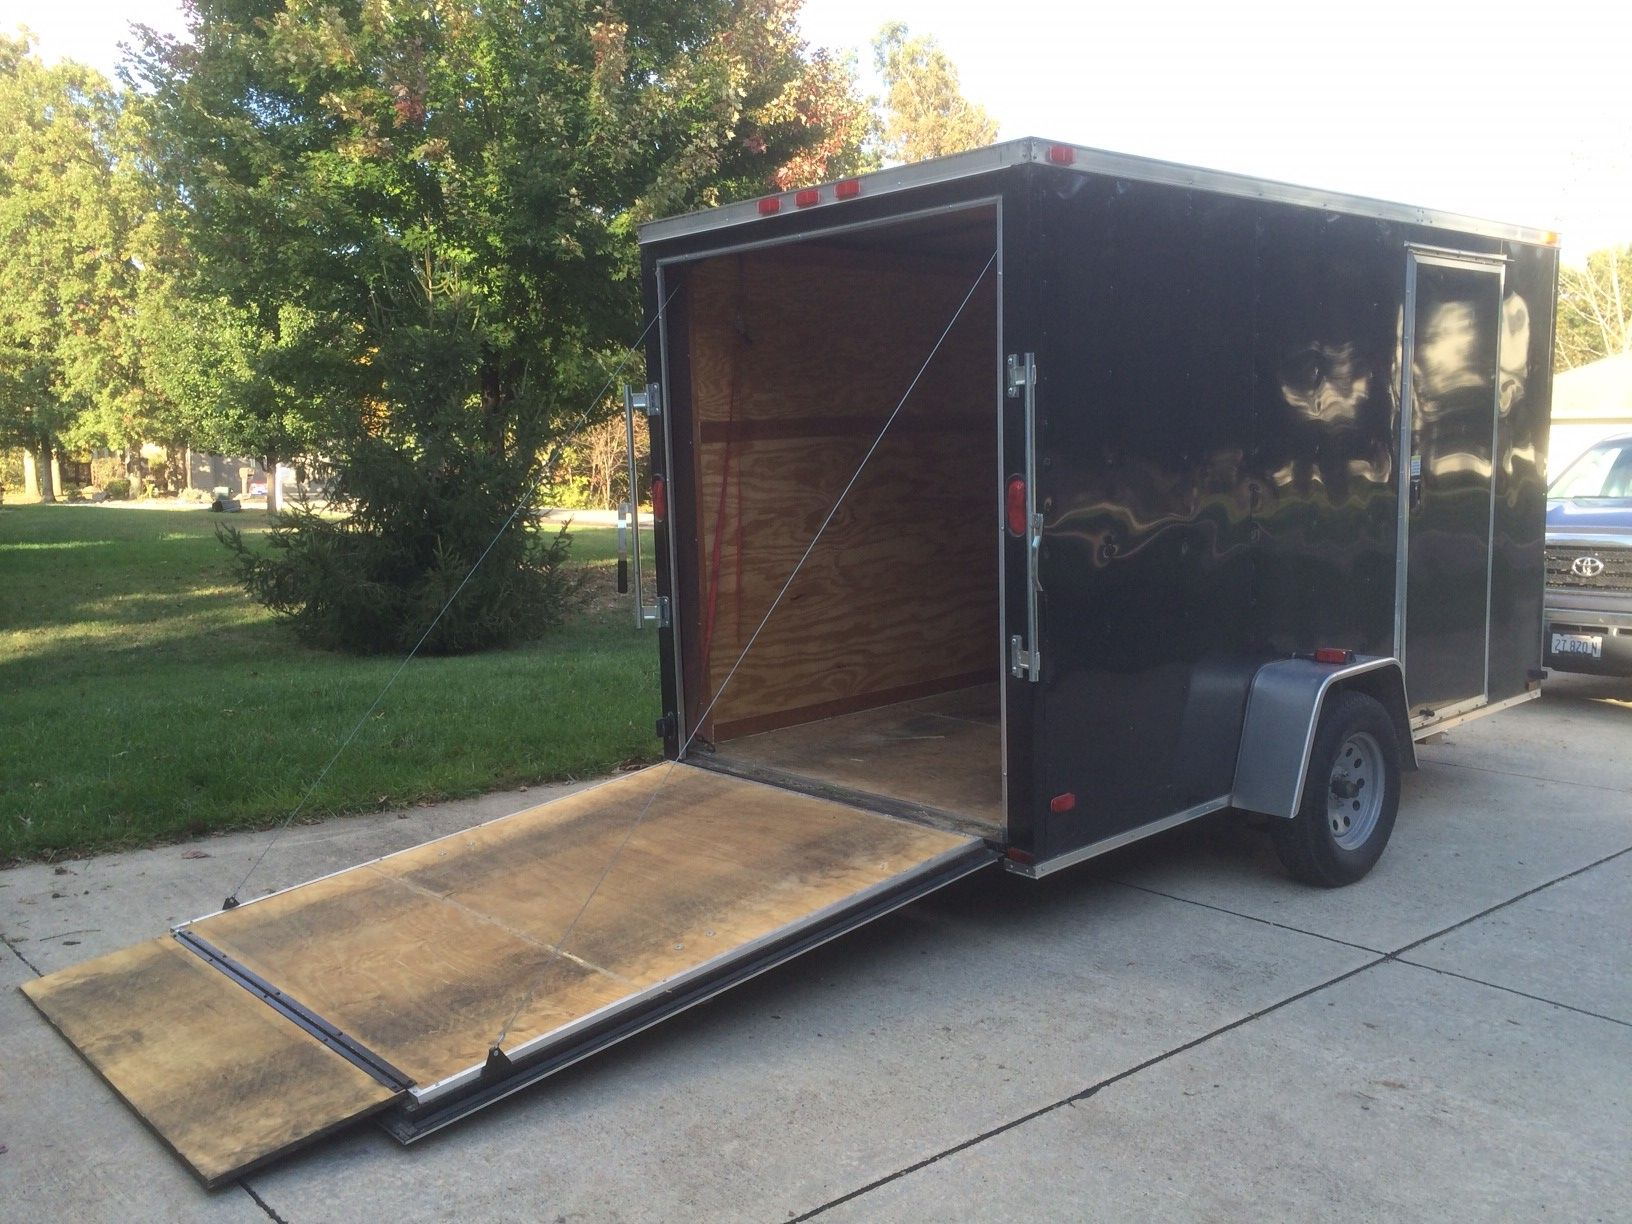 2013 Enclosed Trailer In Smithstuff S Garage Sale In Effingham Il For 2300 2013 Black V Nose Enclosed Trailer6 X 12 Single A Garage Back Doors Latest Cars